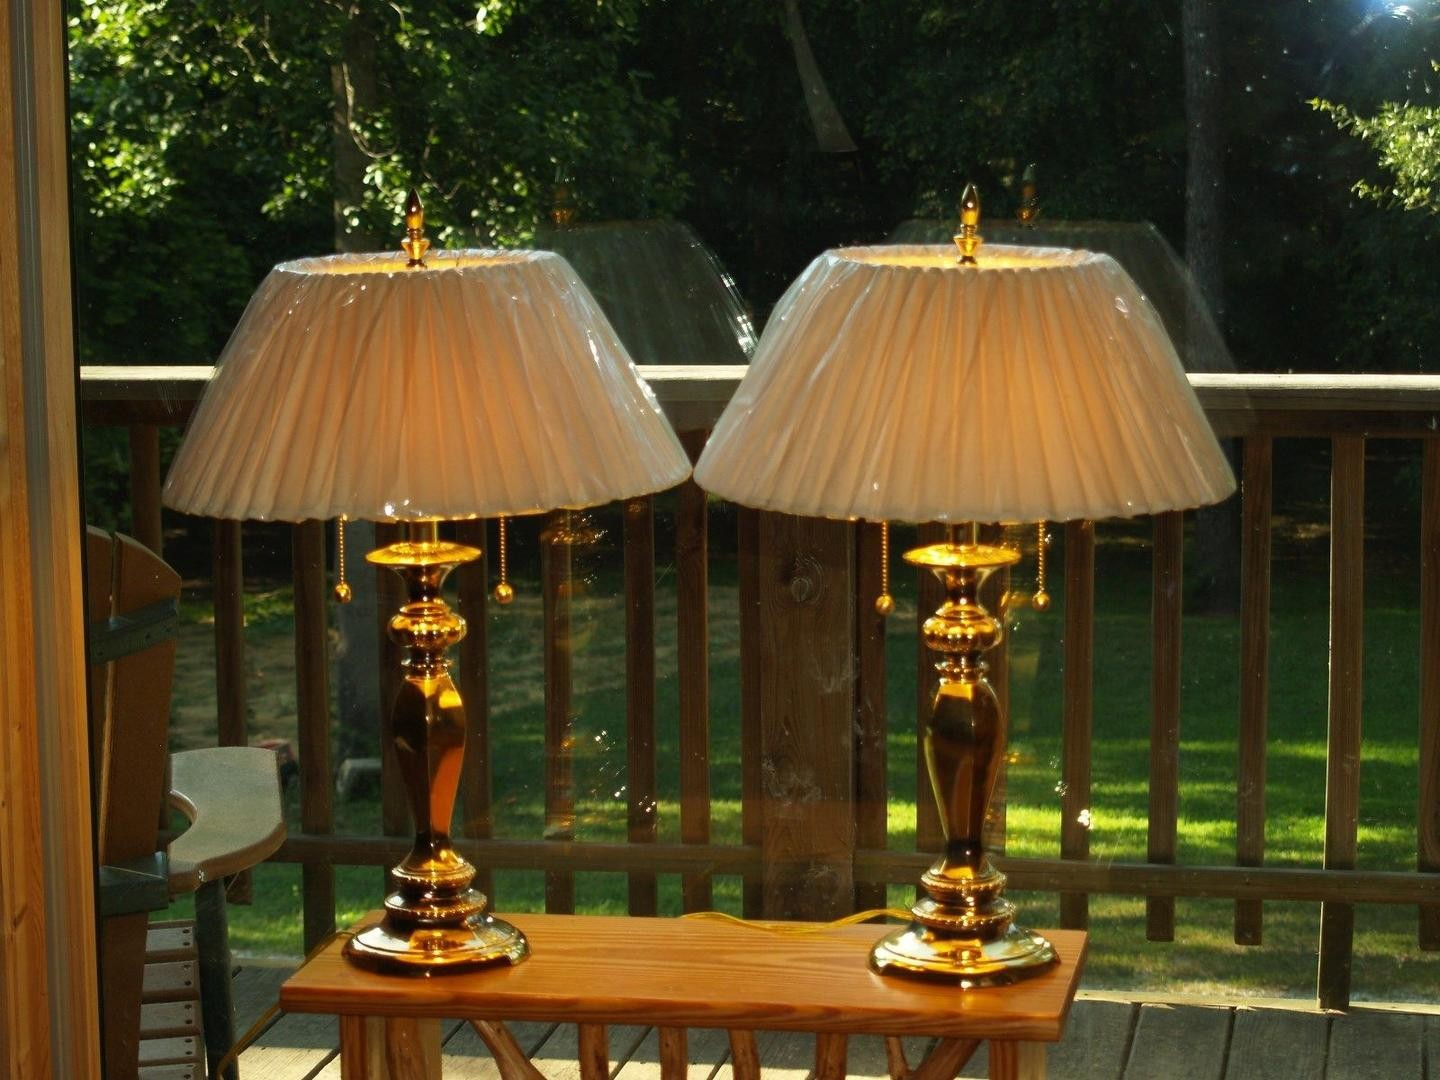 pair burnished brass accent table lamps tall nwob round decorative tablecloth pork pie throne wood pedestal stand stone top coffee ashley stewart furniture pottery barn flooring